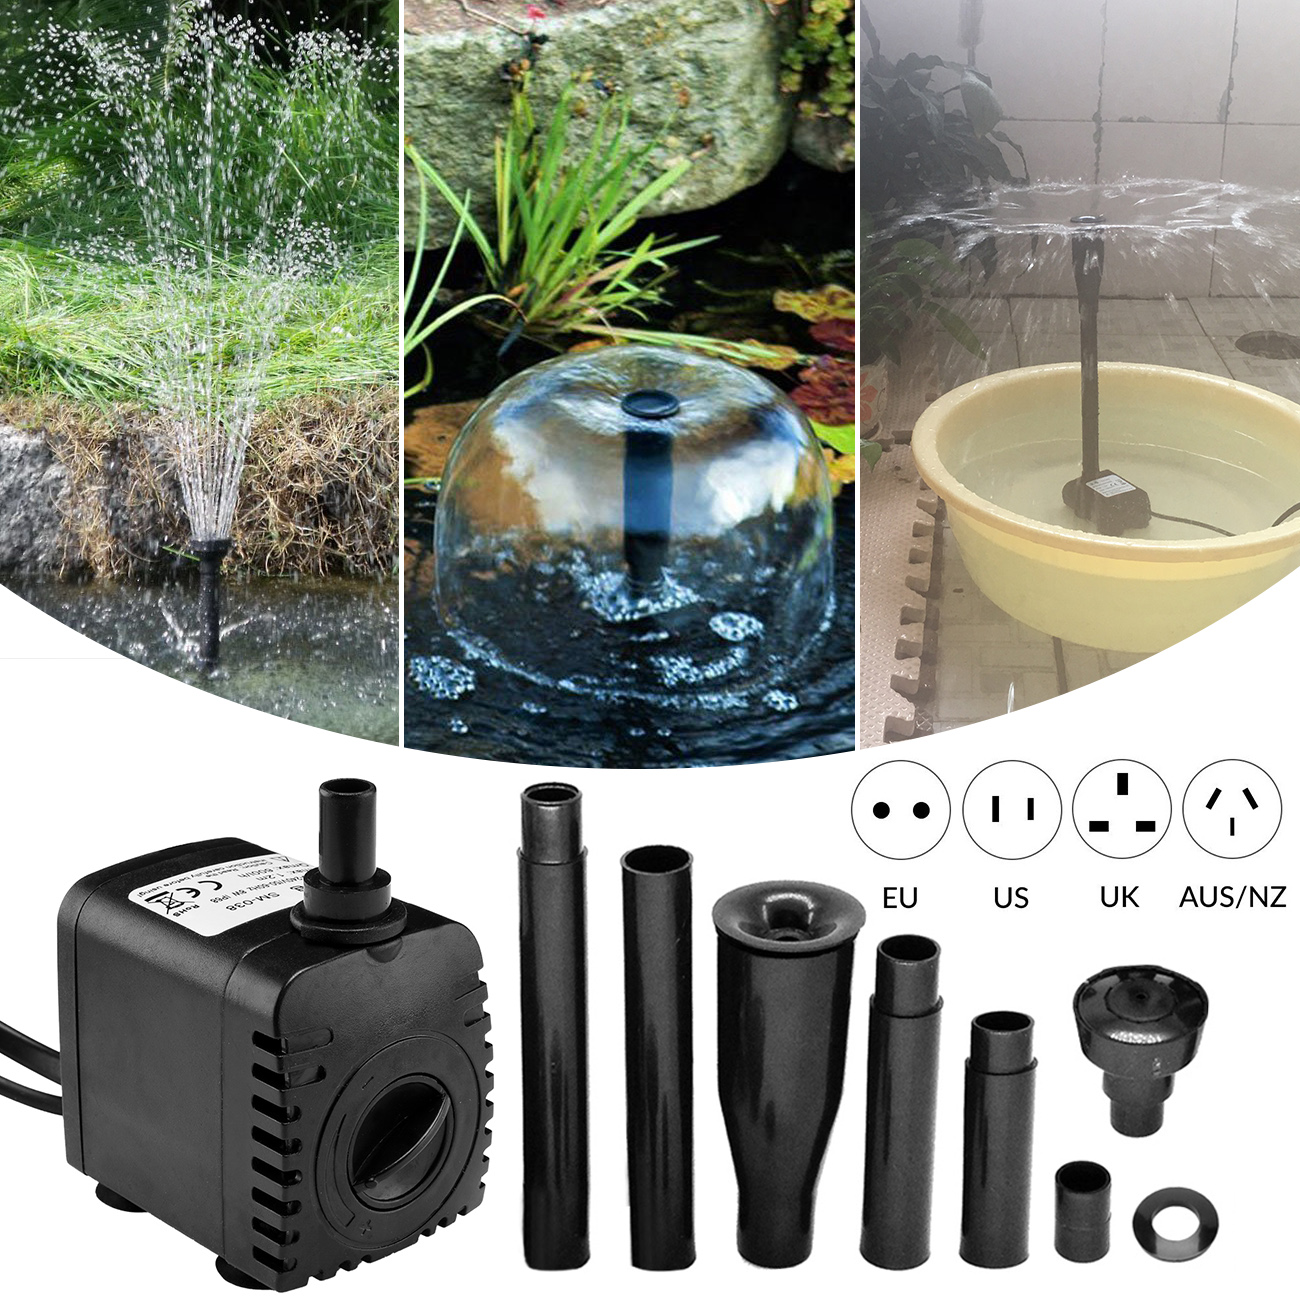 Fountain Pump Garden Water Pump Aquariums Submersible Pump  Oxygen Pump Rockery Fountain Water Fountain Pump Water Pump   D30